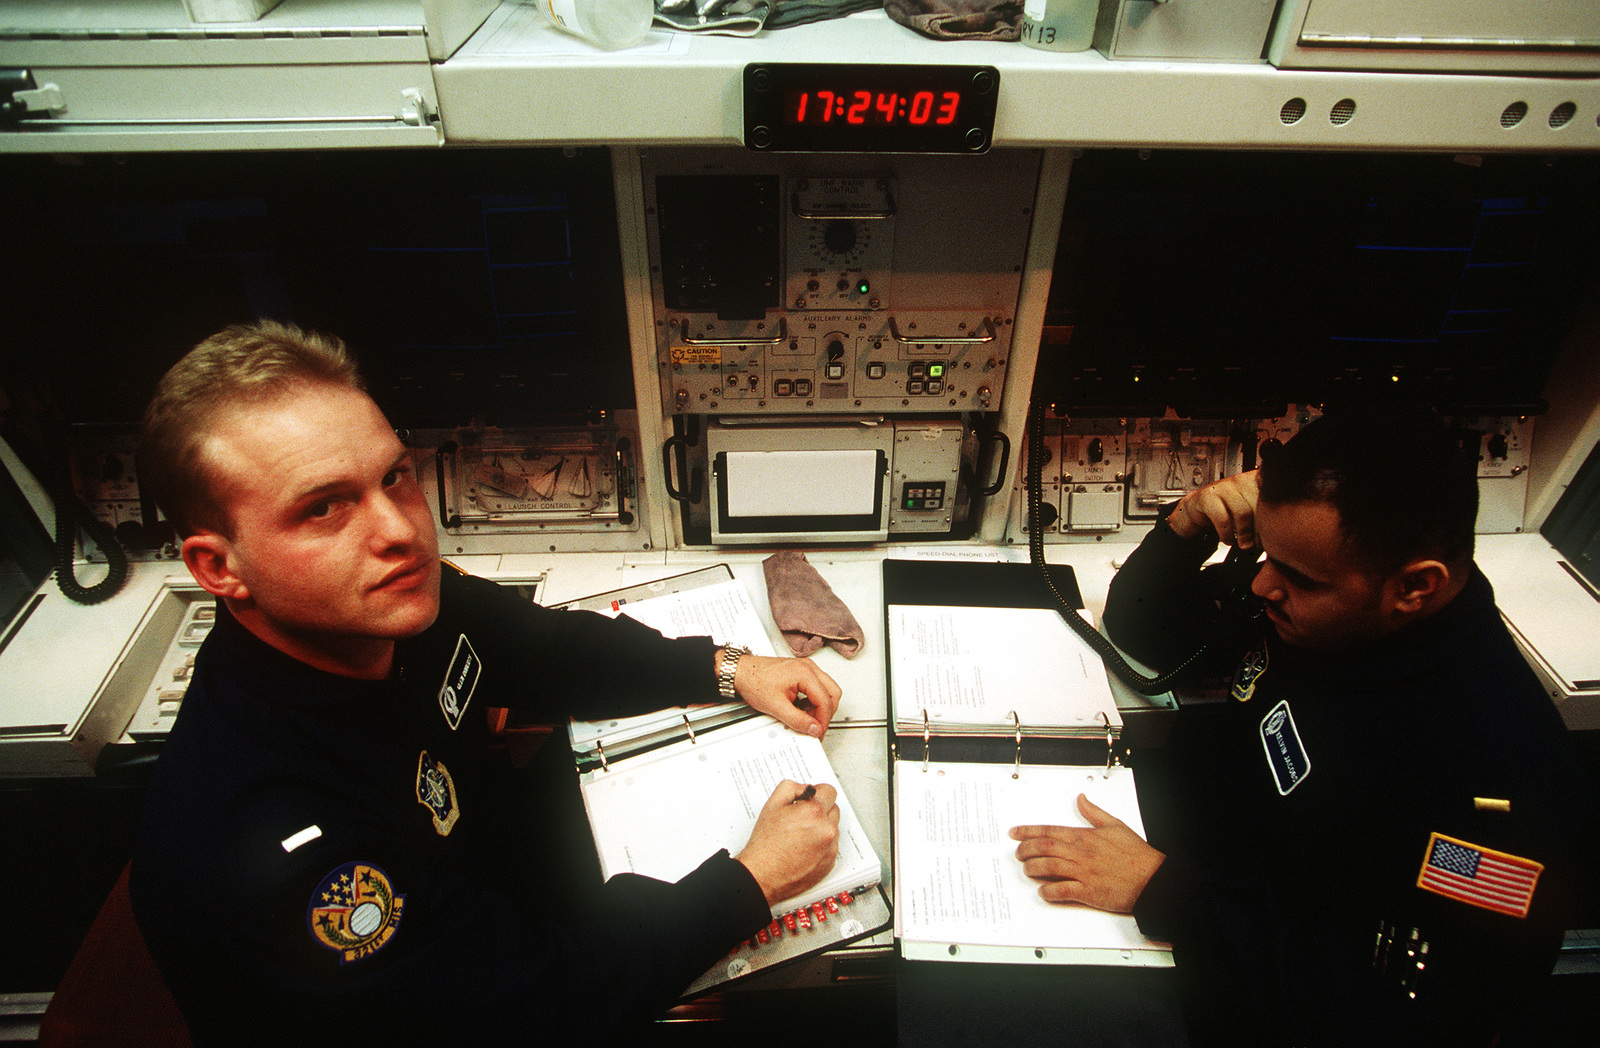 1ST LT. Glen Roberts and 2nd LT. Kelvin Jacobs from the 90th Missile Wing/Minuteman Crew read their manuals and perform daily missile tests inside the Missile Procedures Trainer